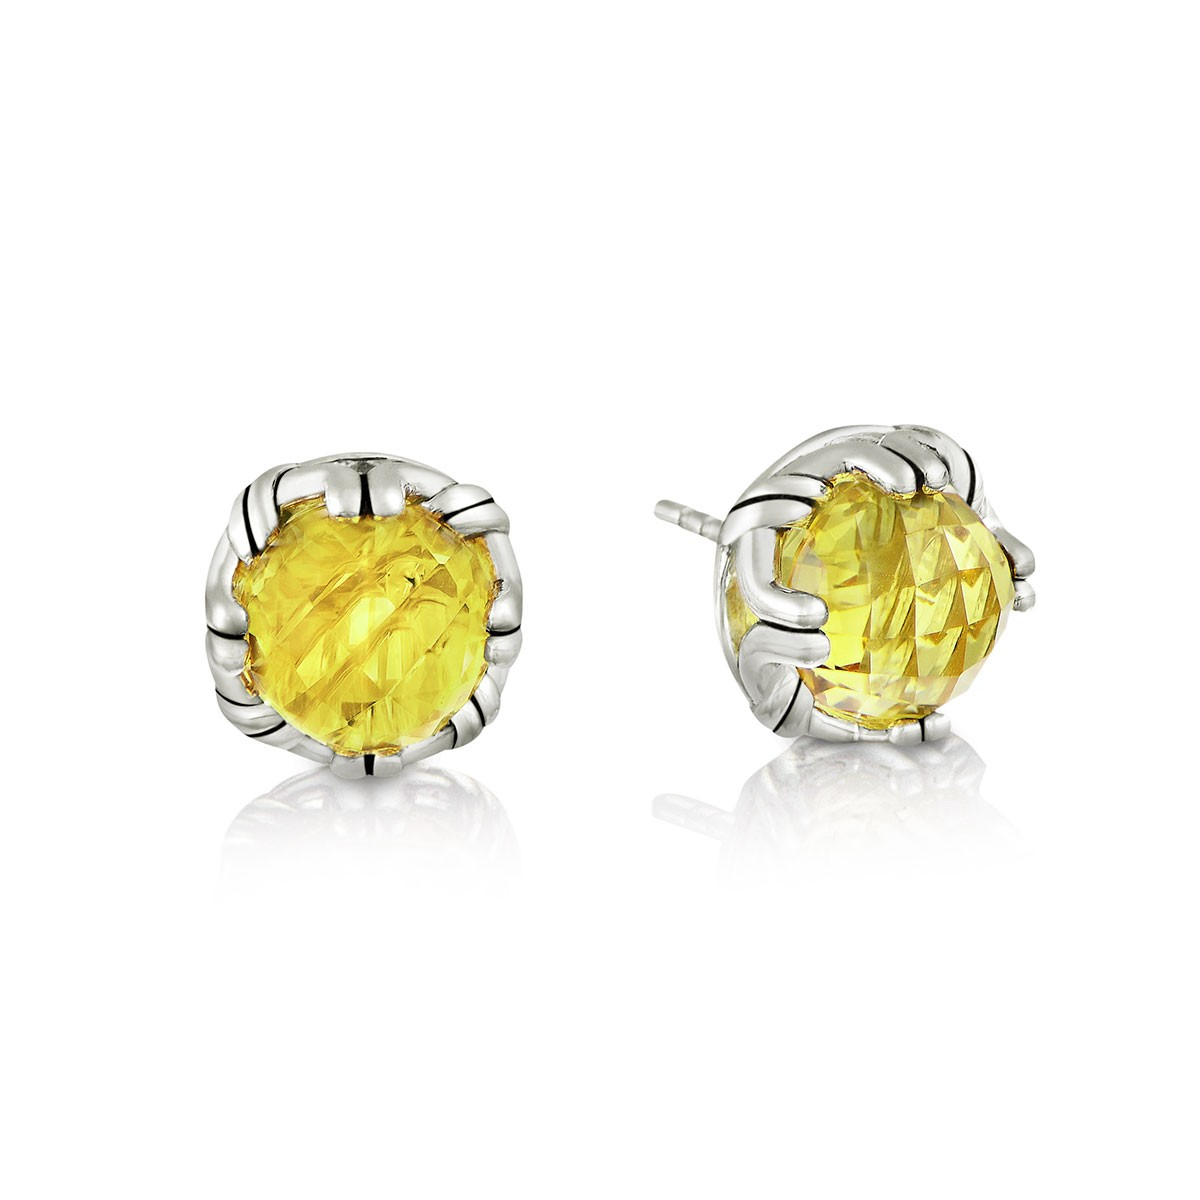 j rez jackets studs stud fulldetached bg for id signature citrine c jewelry sale high org alexandra earring mor with earrings l yellow diamond white view